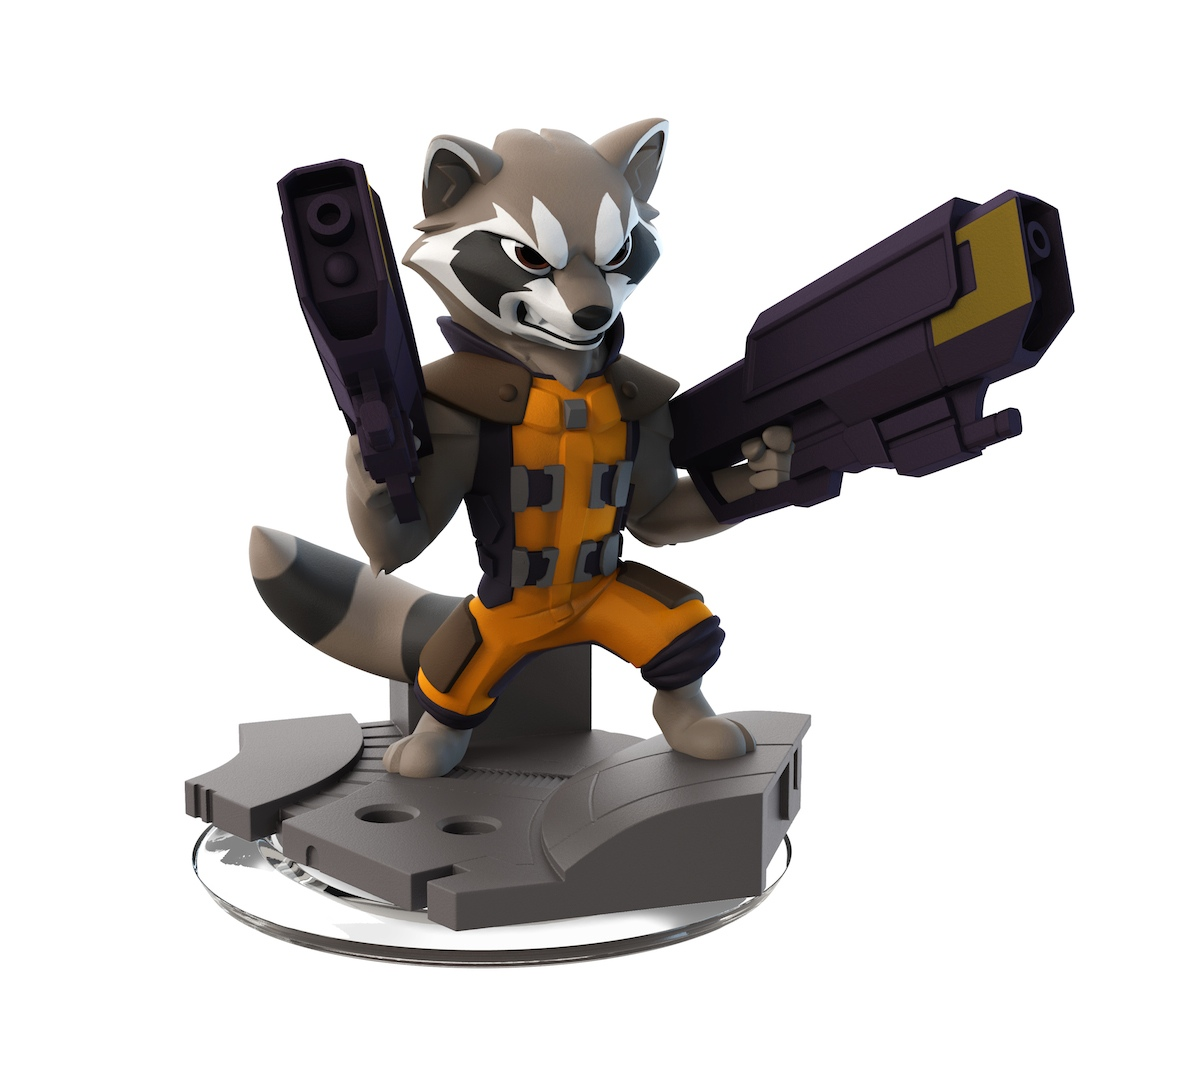 Disney Infinity 2 - Guardians Figures - Rocket Raccoon